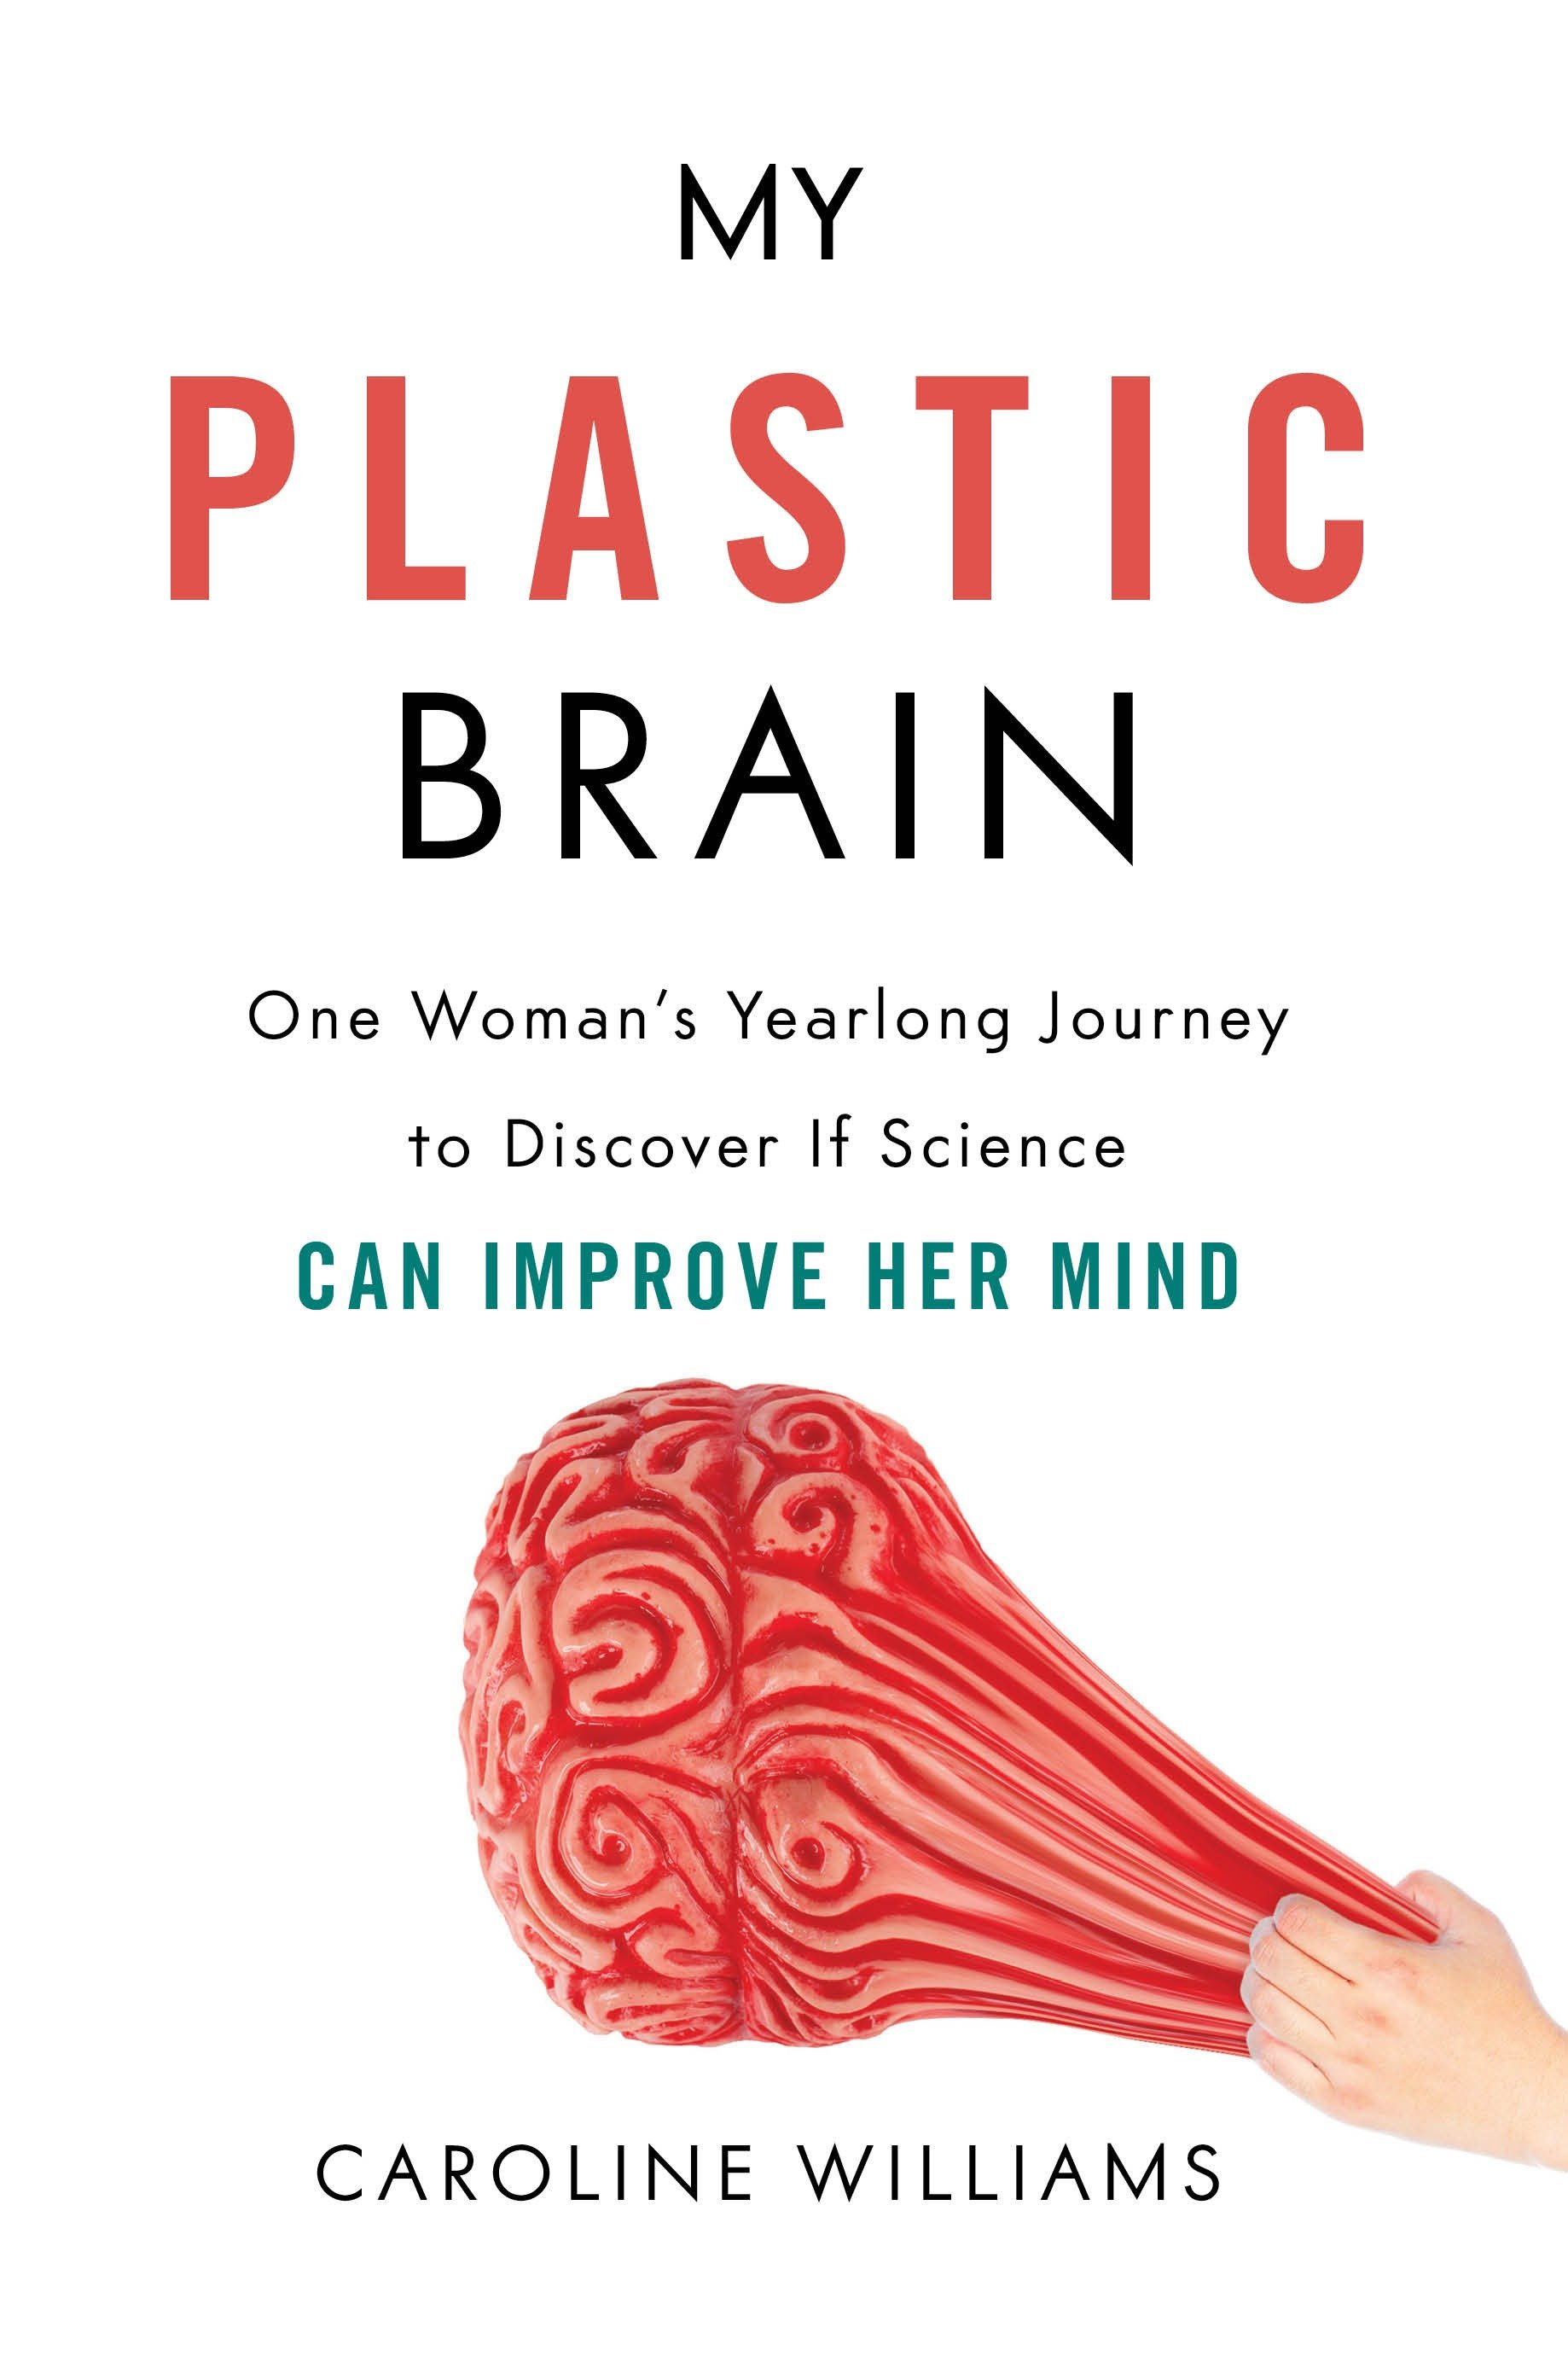 My plastic brain one woman's yearlong journey to discover if science can improve her mind